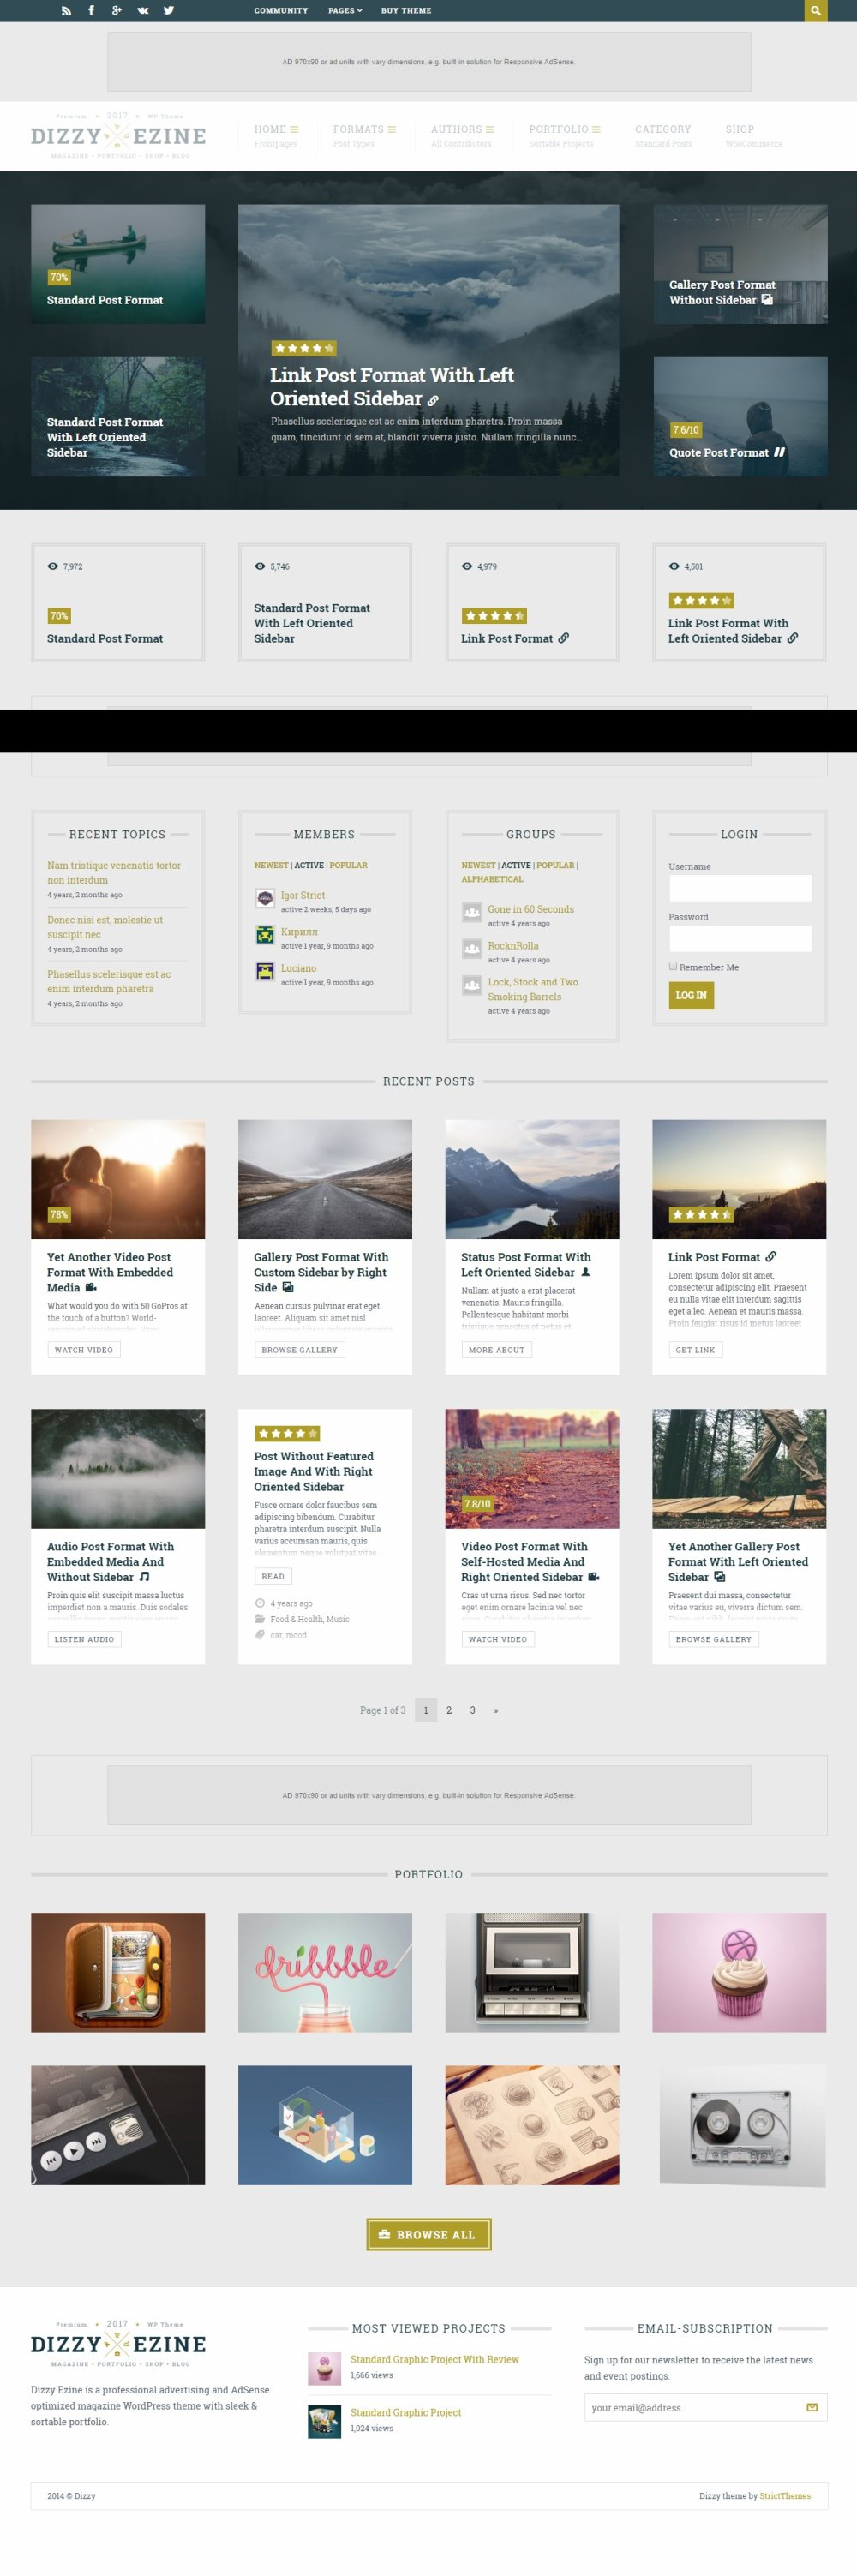 DizzyMag - Ad&Review WordPress Theme